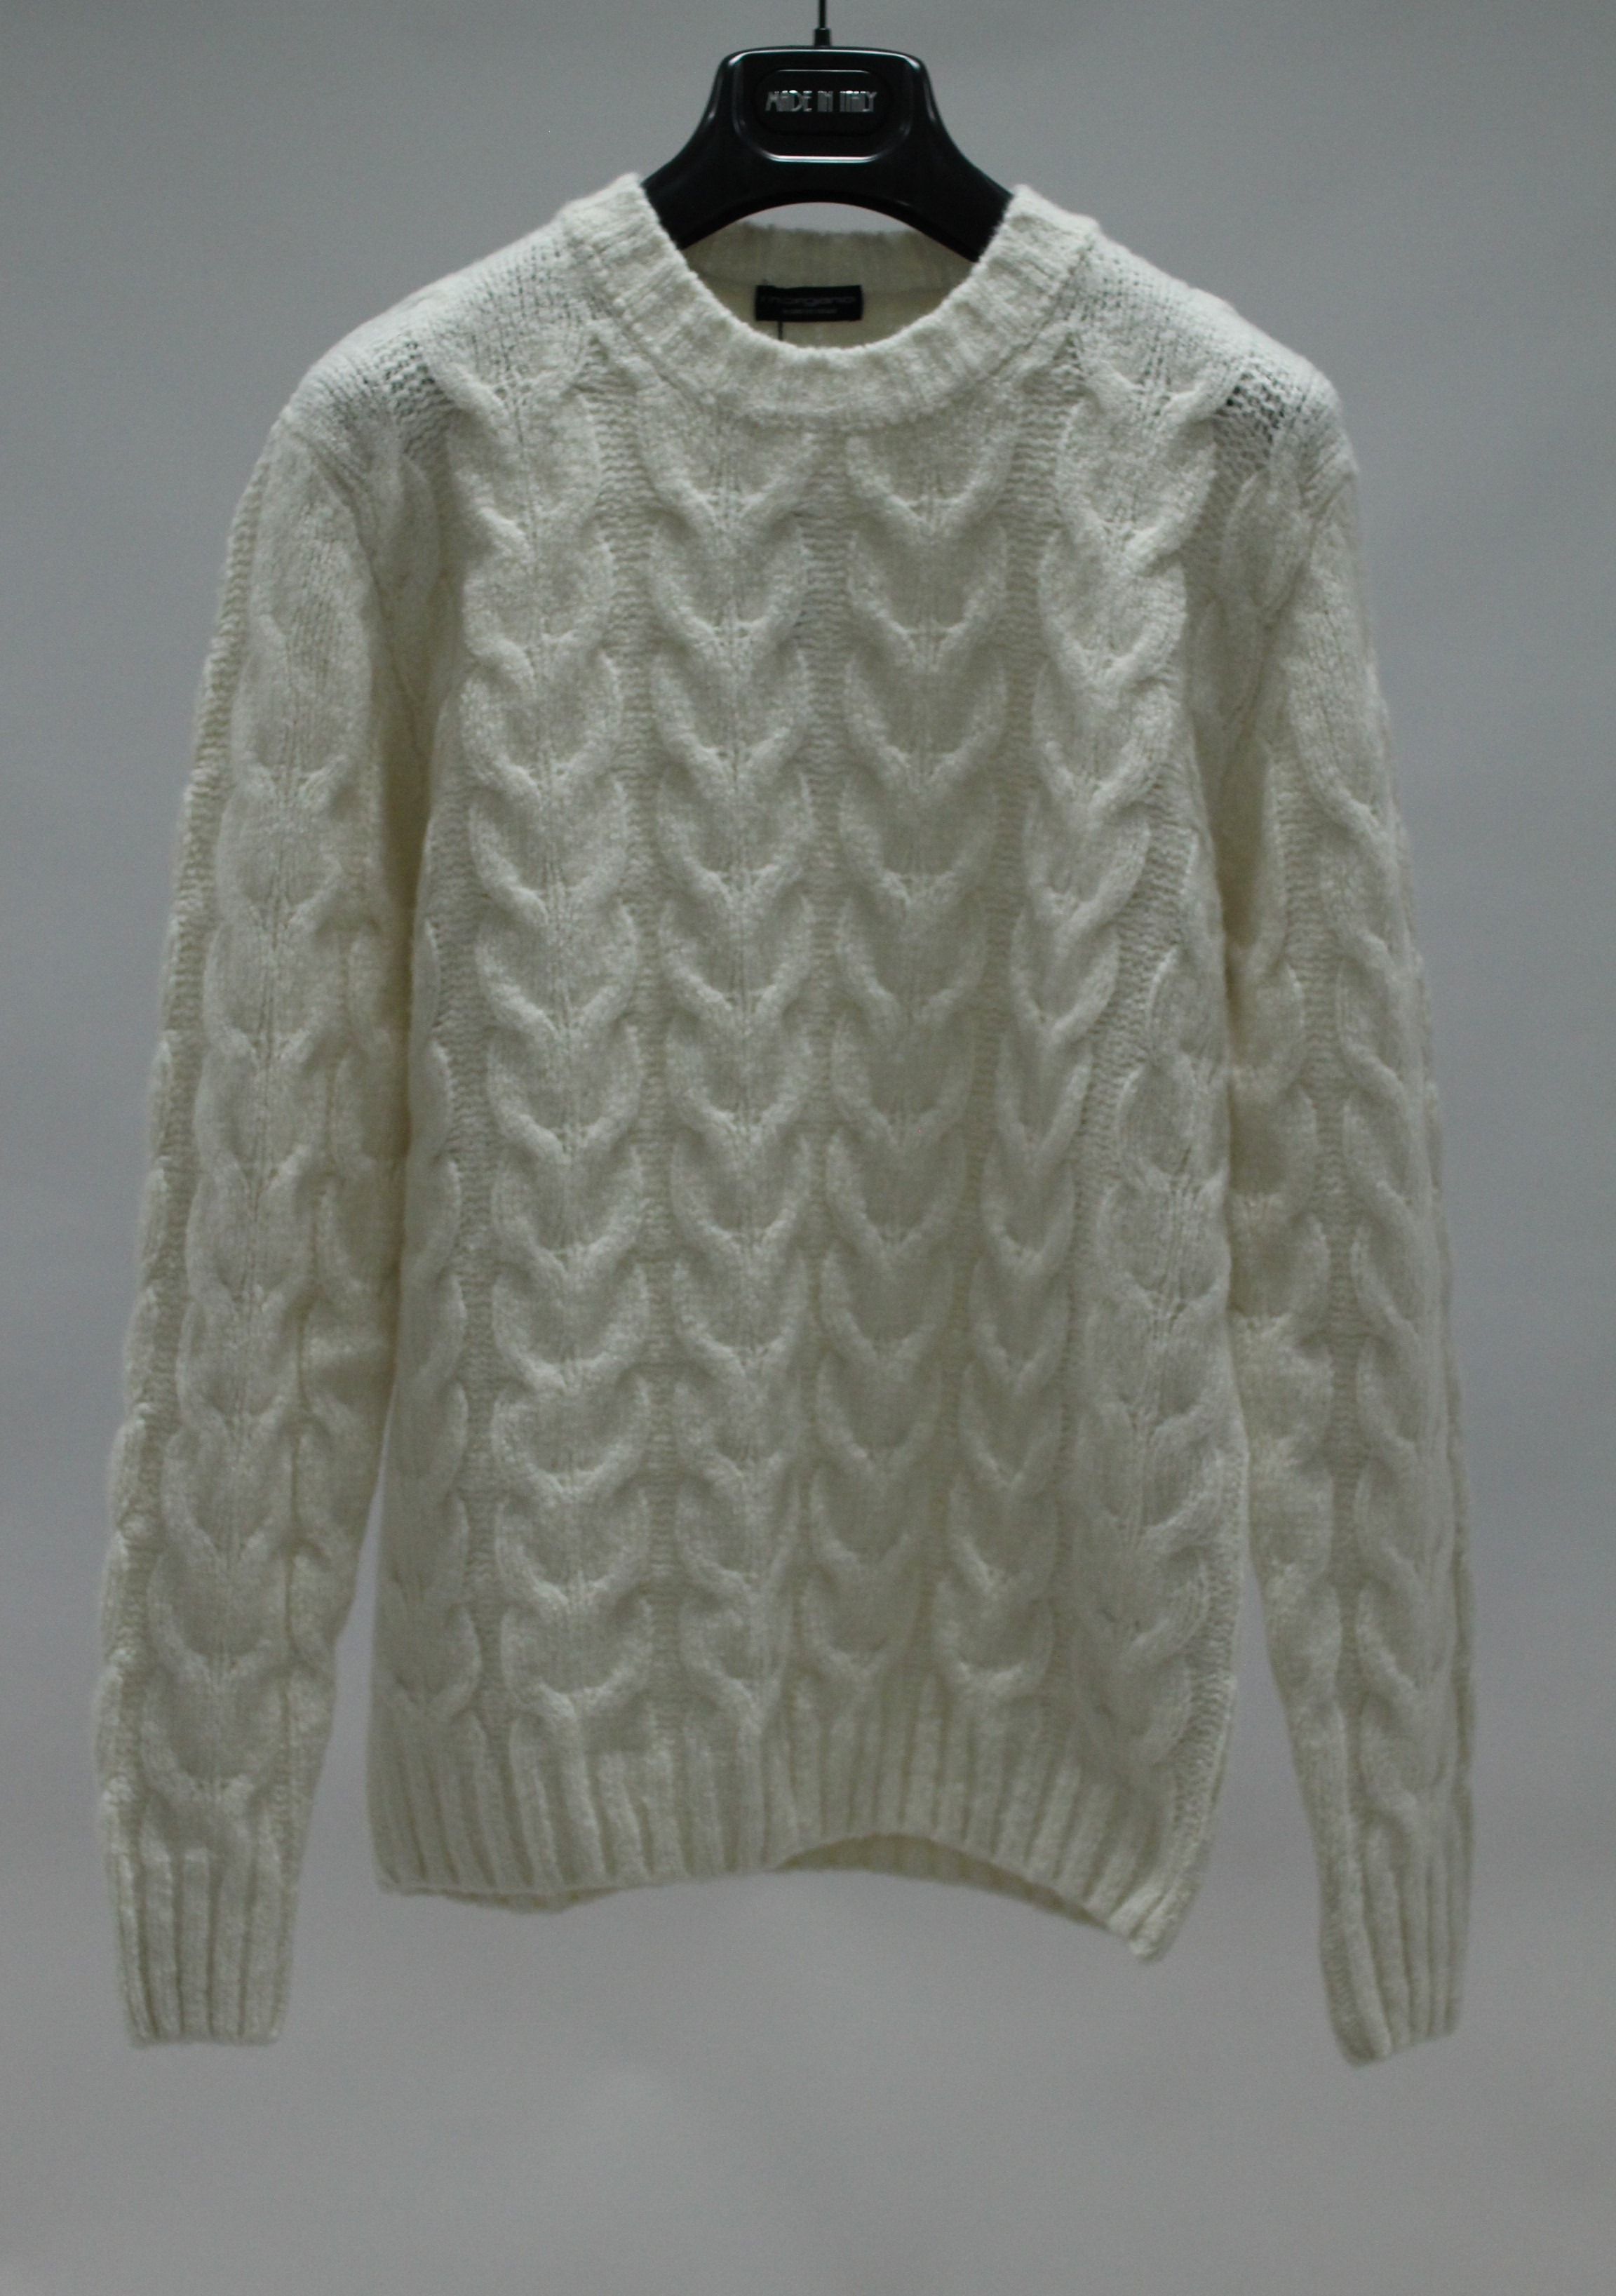 20FW WOOL/CASH blended cable sweater Ecru whiteMorgano(모르가노)8/13 까지 입점기념 15%세일